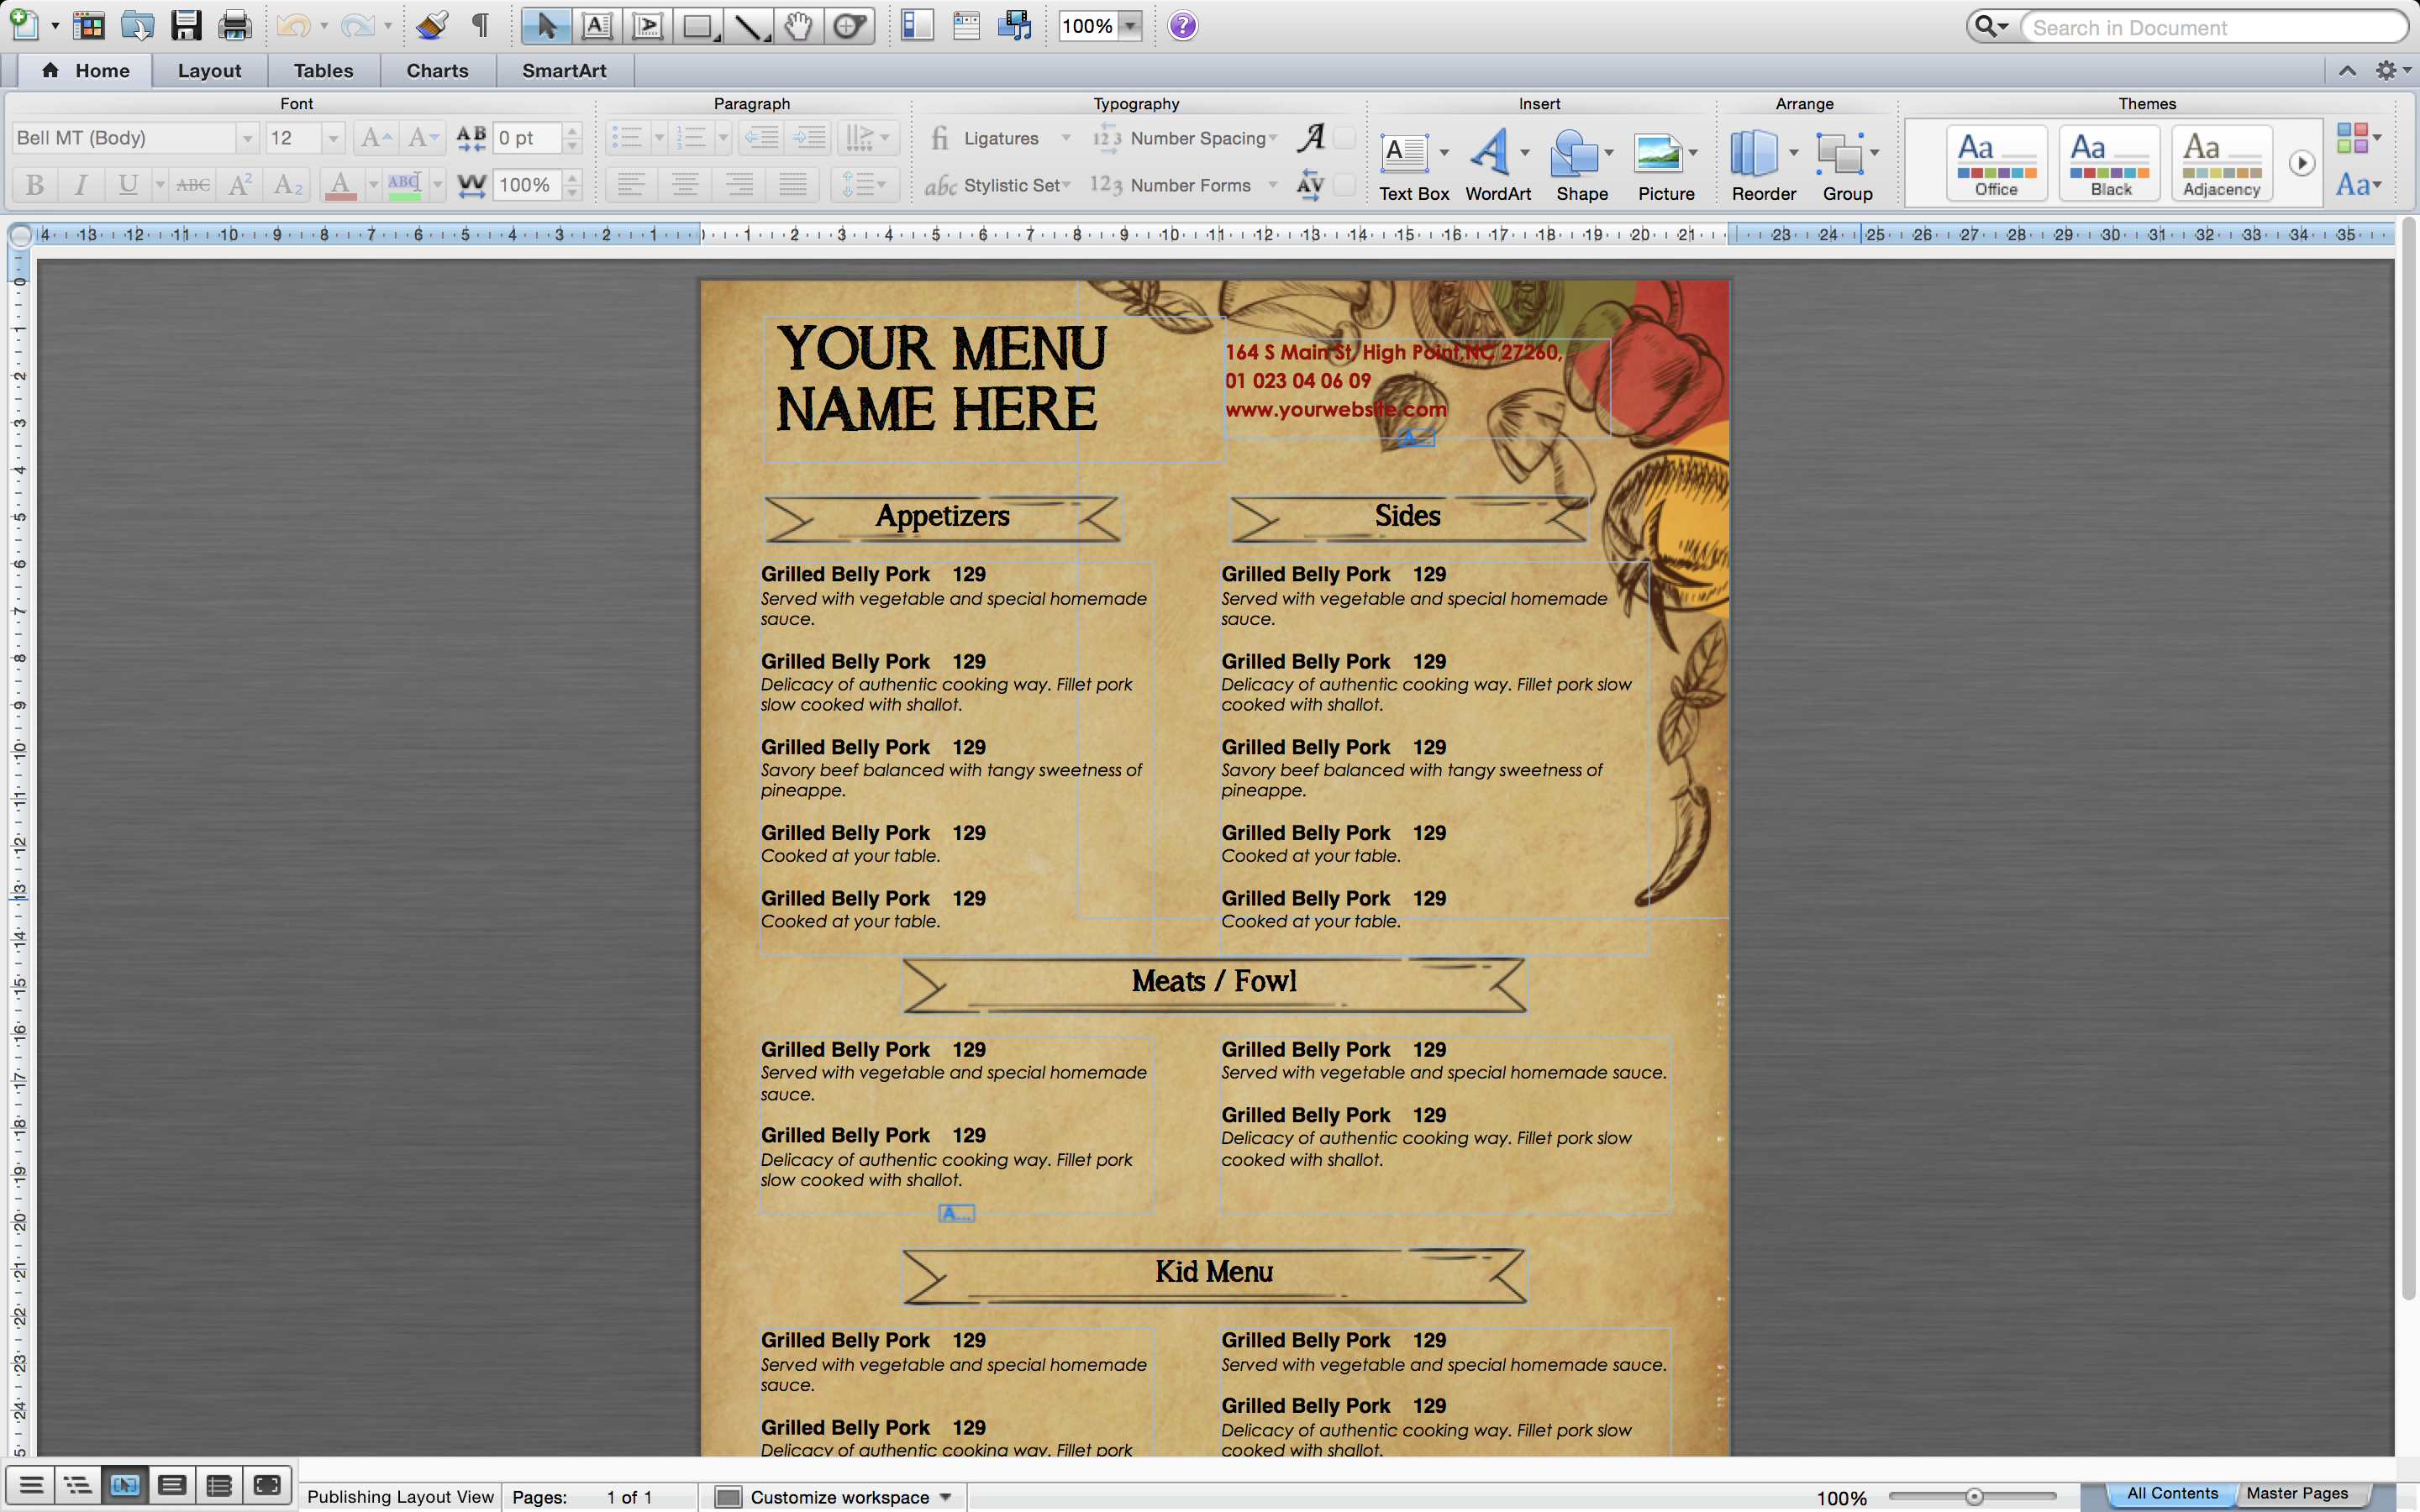 Design Templates Menu Templates Wedding Menu Food Menu Bar Screen Shot 2017  03 03 At 1 Menu Id27 How To Make A Restaurant Menu On Microsoft Word  How To Make A Food Menu On Microsoft Word